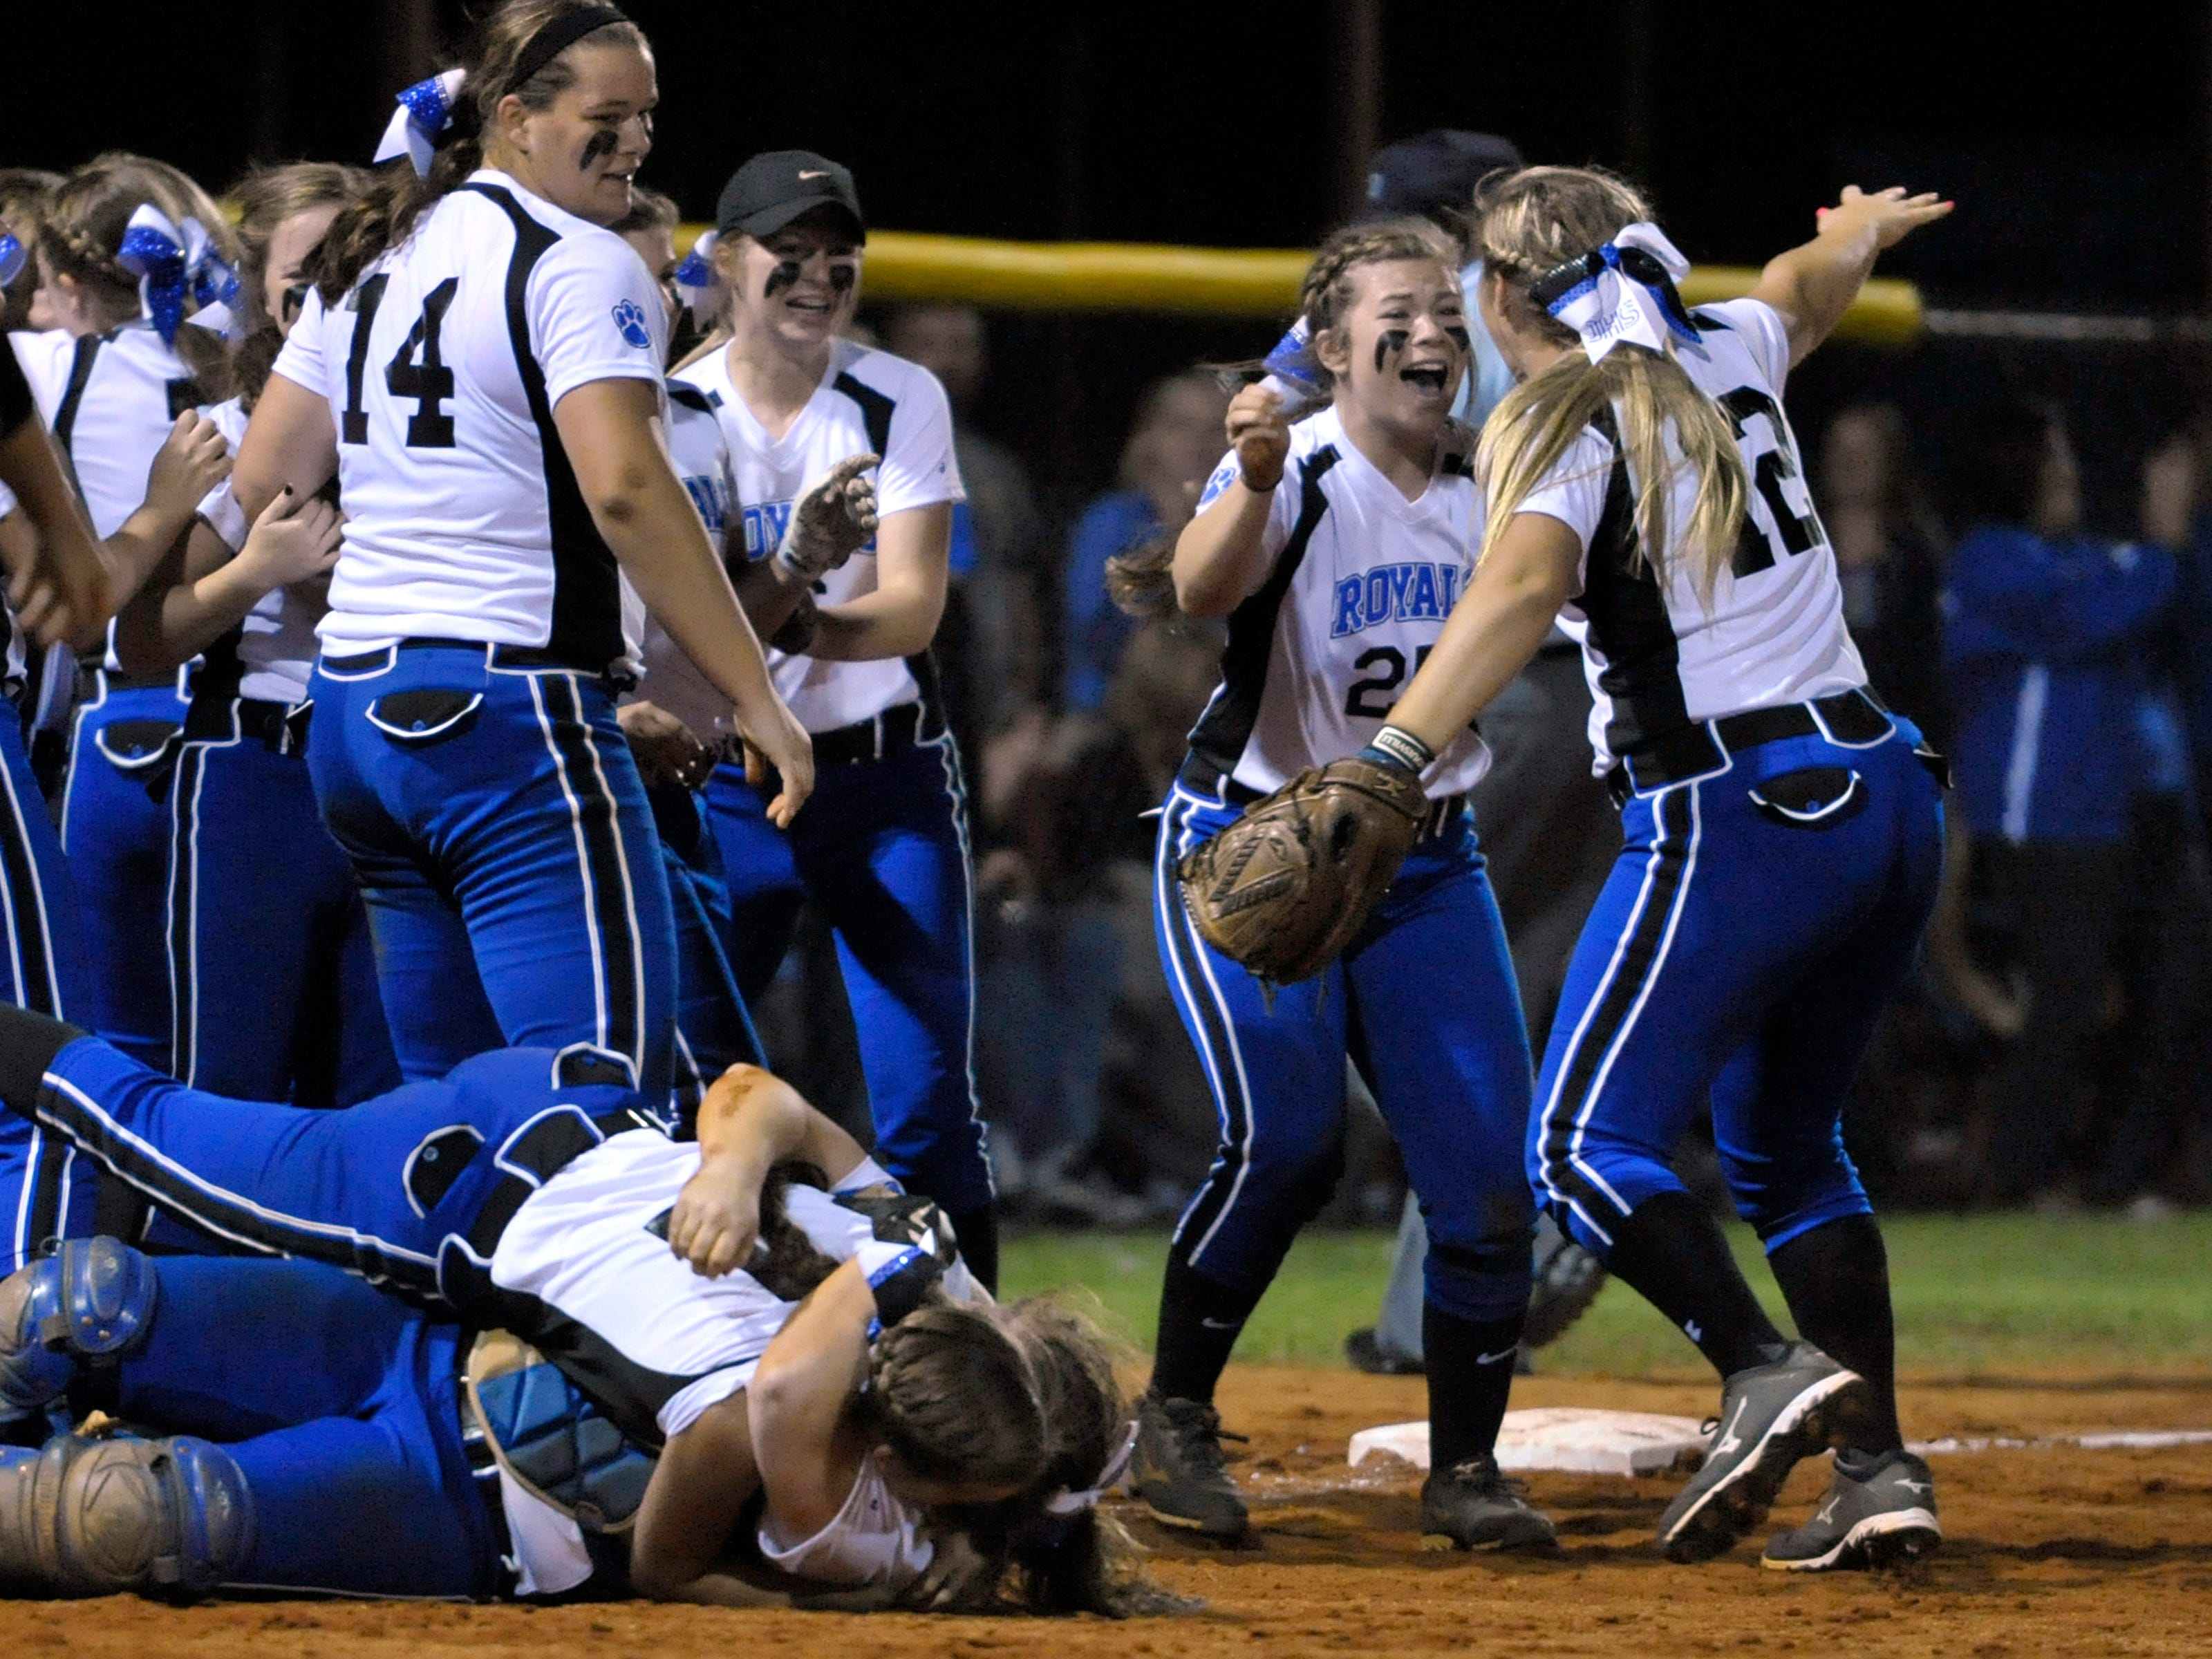 The Jay Lady Royals celebrate their 2-1 Region 2-1A softball victory over the Chipley Tigers moments after getting the final out on Chipley and putting and end to a Tigers rally that threatened to turn the game around for Chipley.